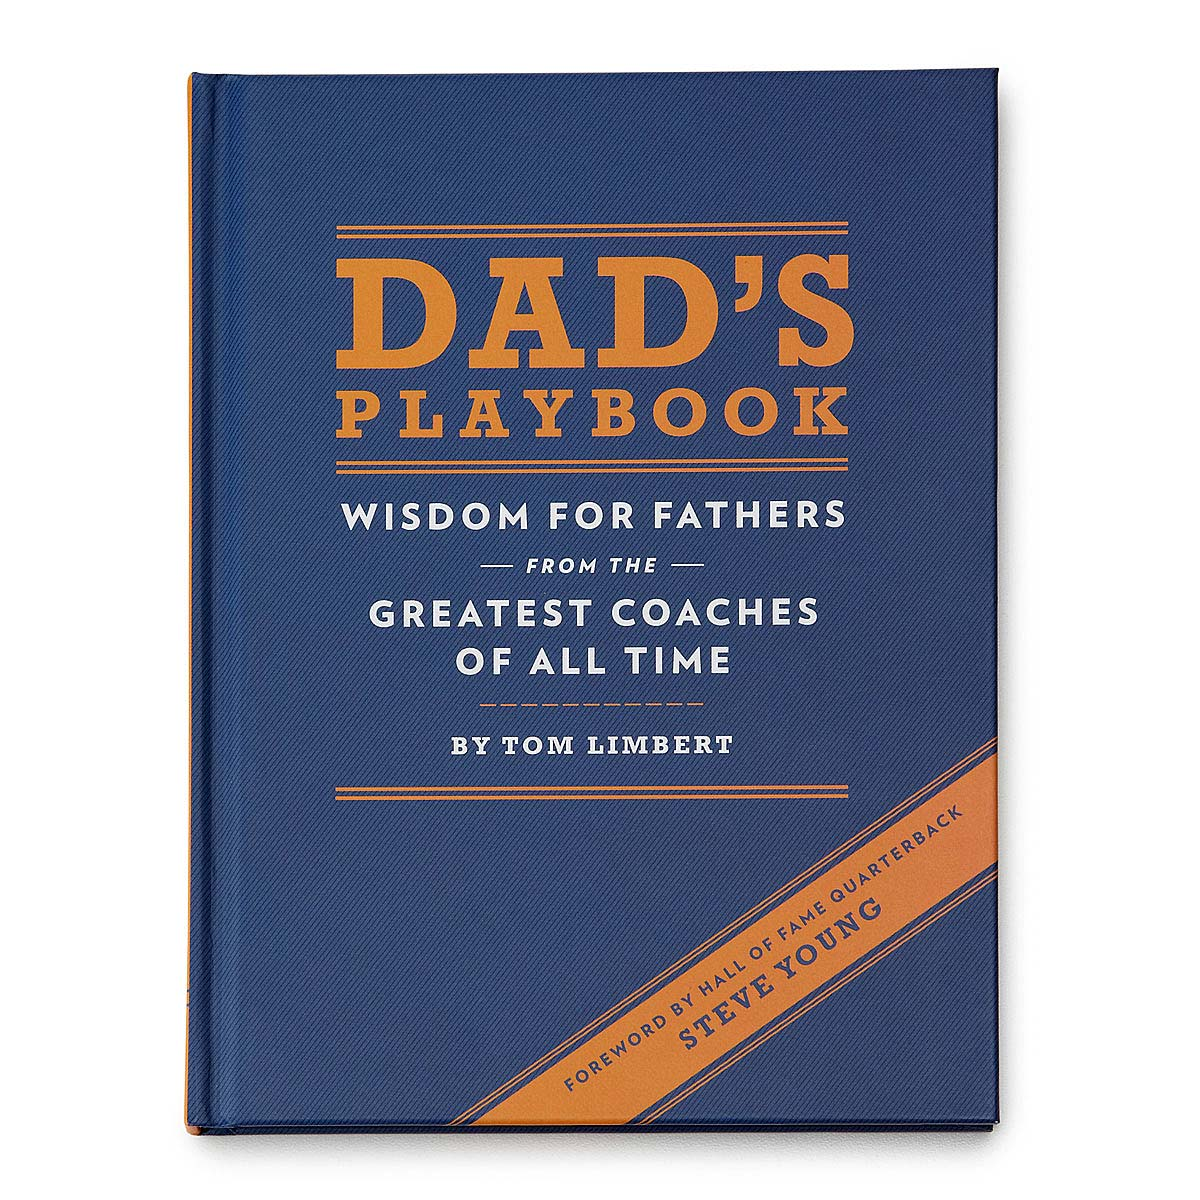 Dads Playbook Sports Quote Parenting Advice Uncommongoods